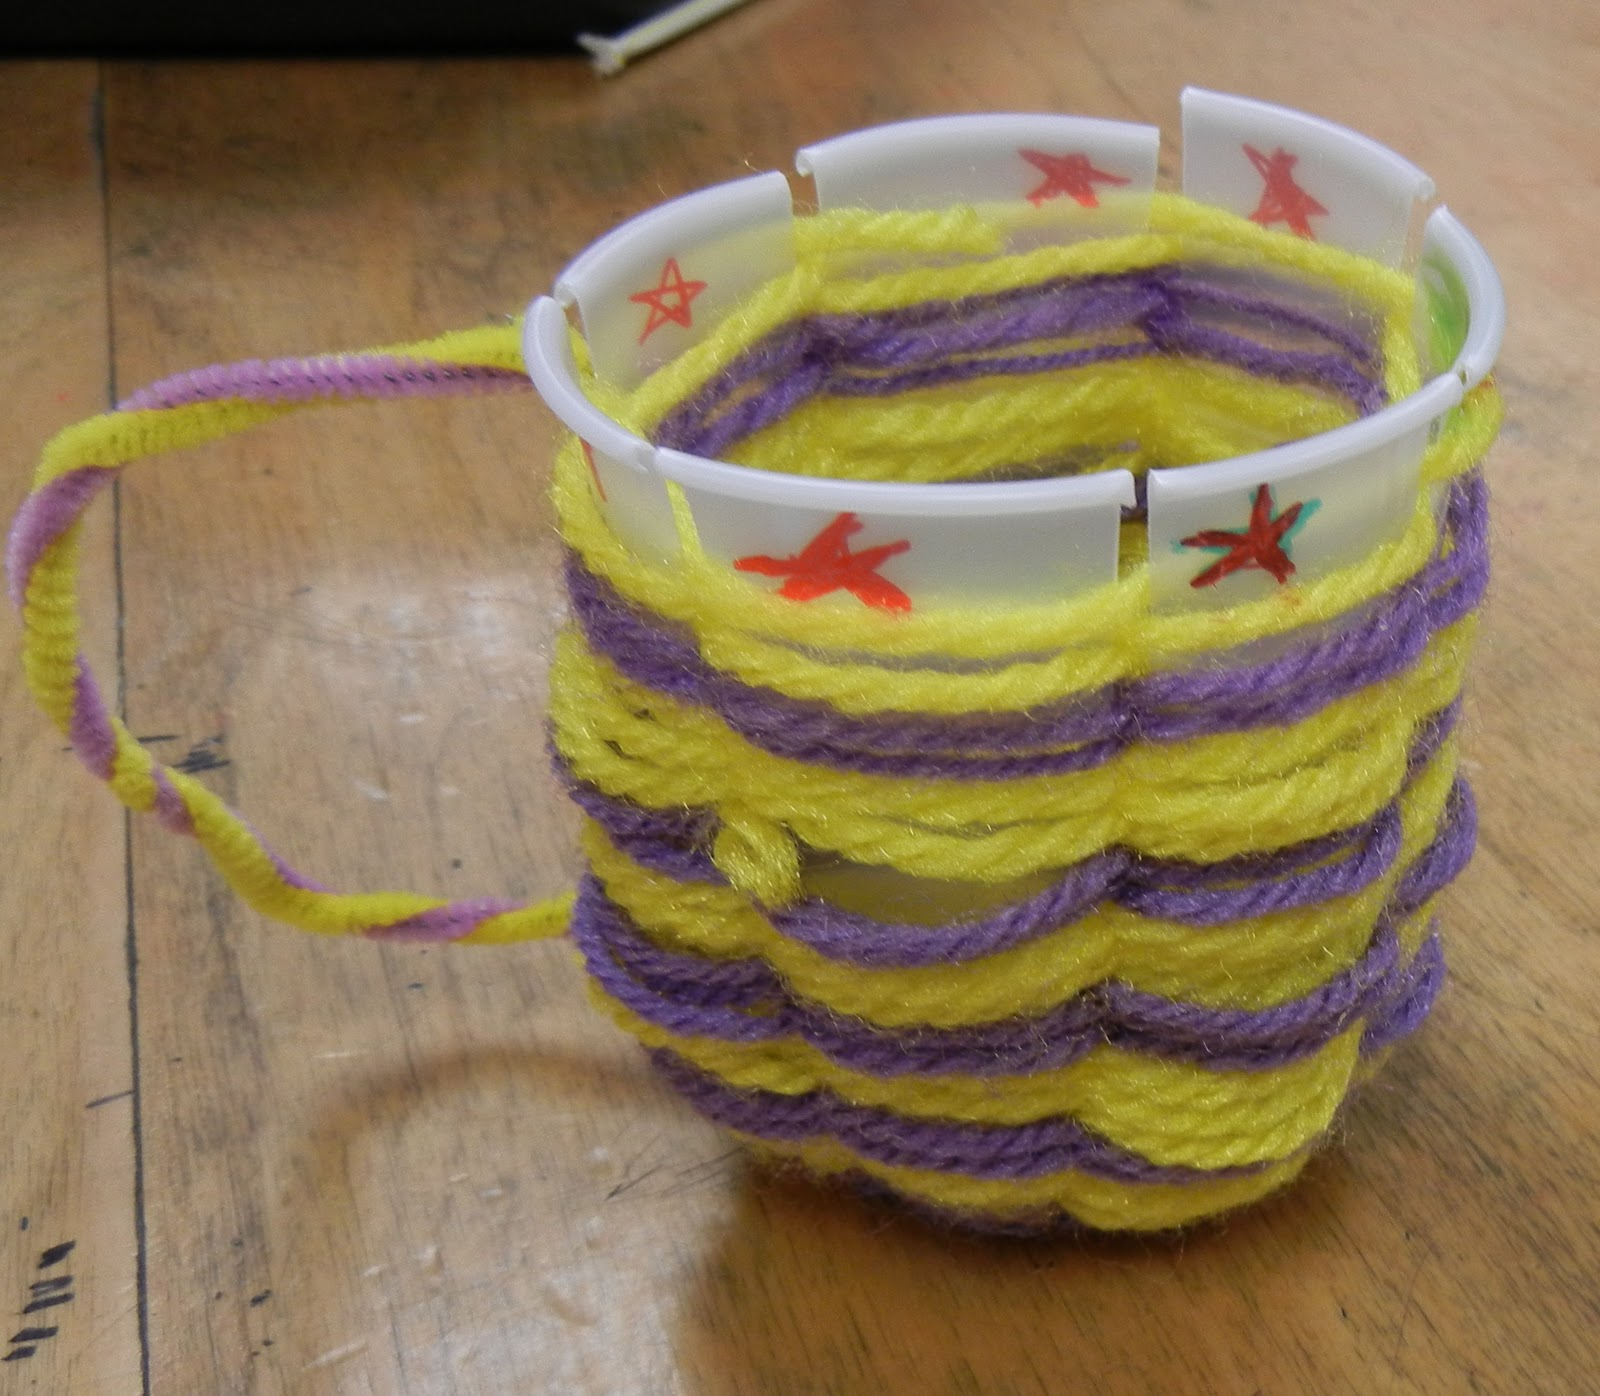 Woven Yarn Basket : The modern art smock th woven yarn cup baskets